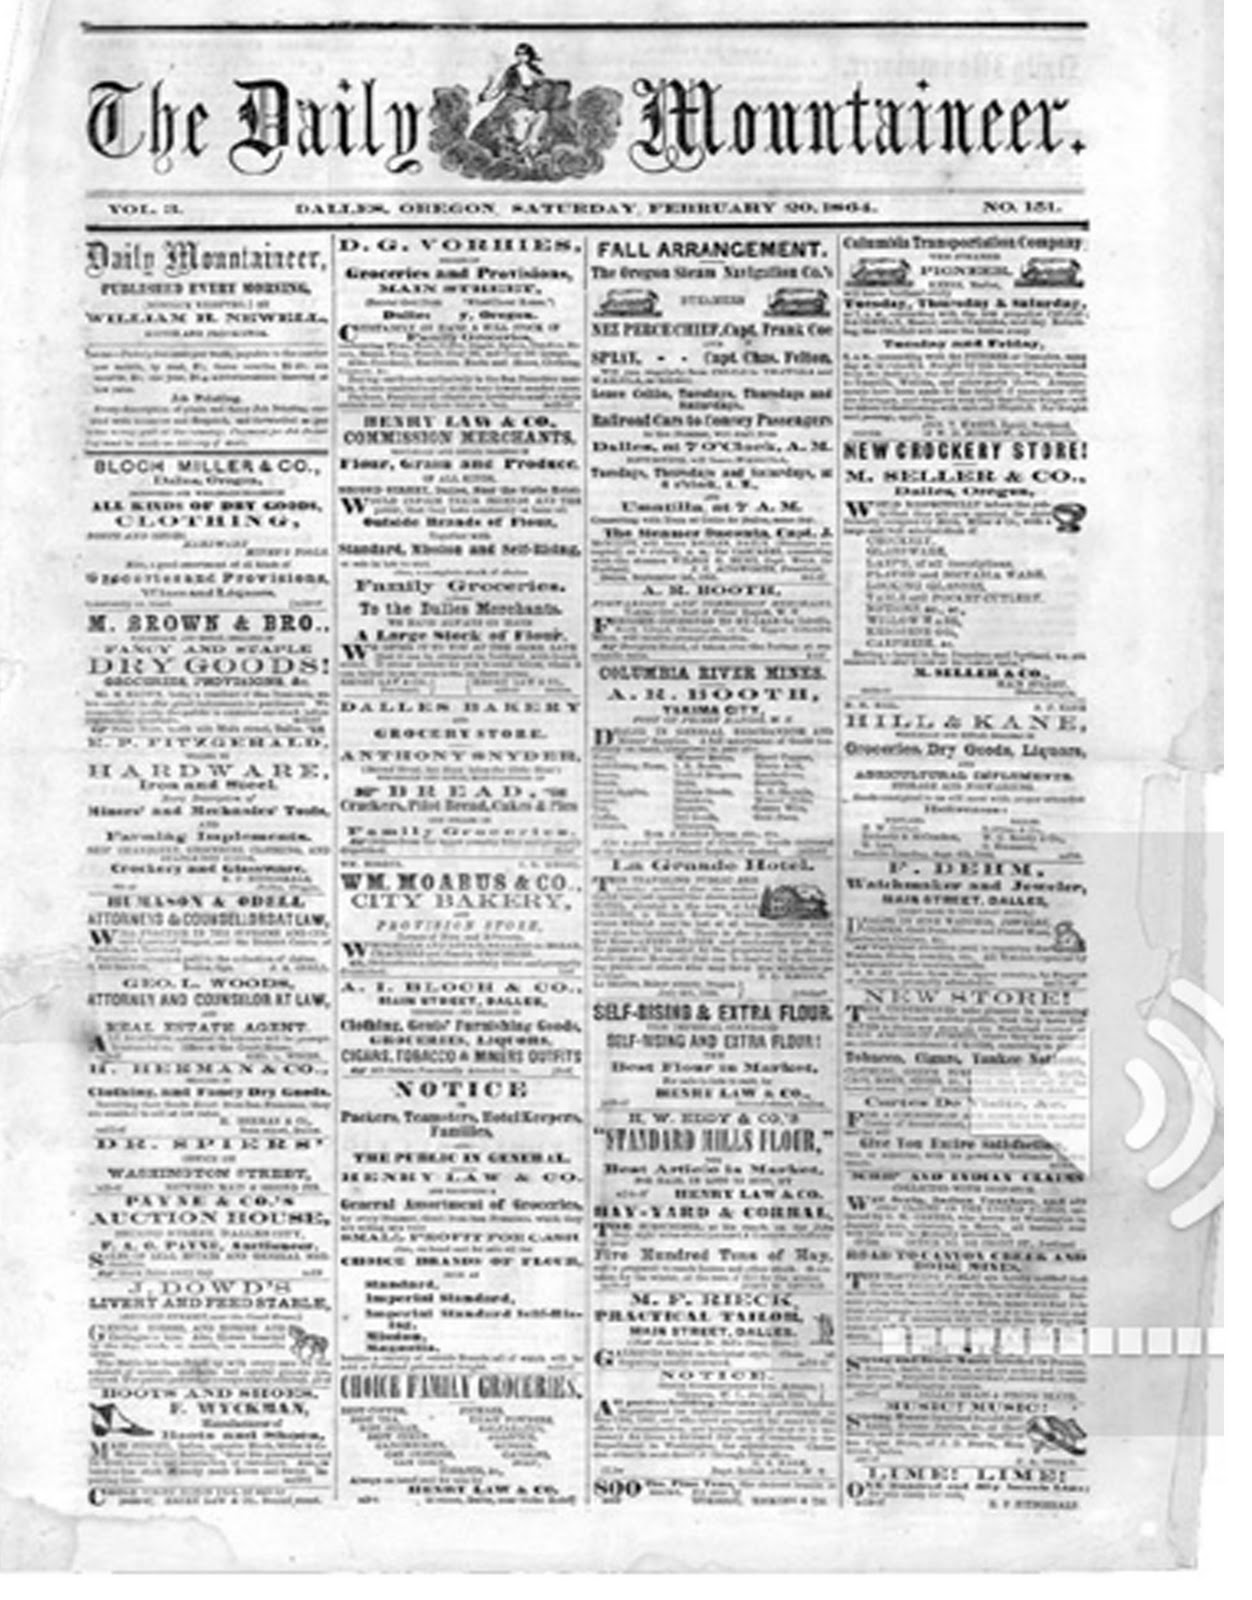 researching old newspapers Order old newspapers from uk's largest archive with stunning gift presentation box pdf researching old newspapers online - internet genealogy researching old.